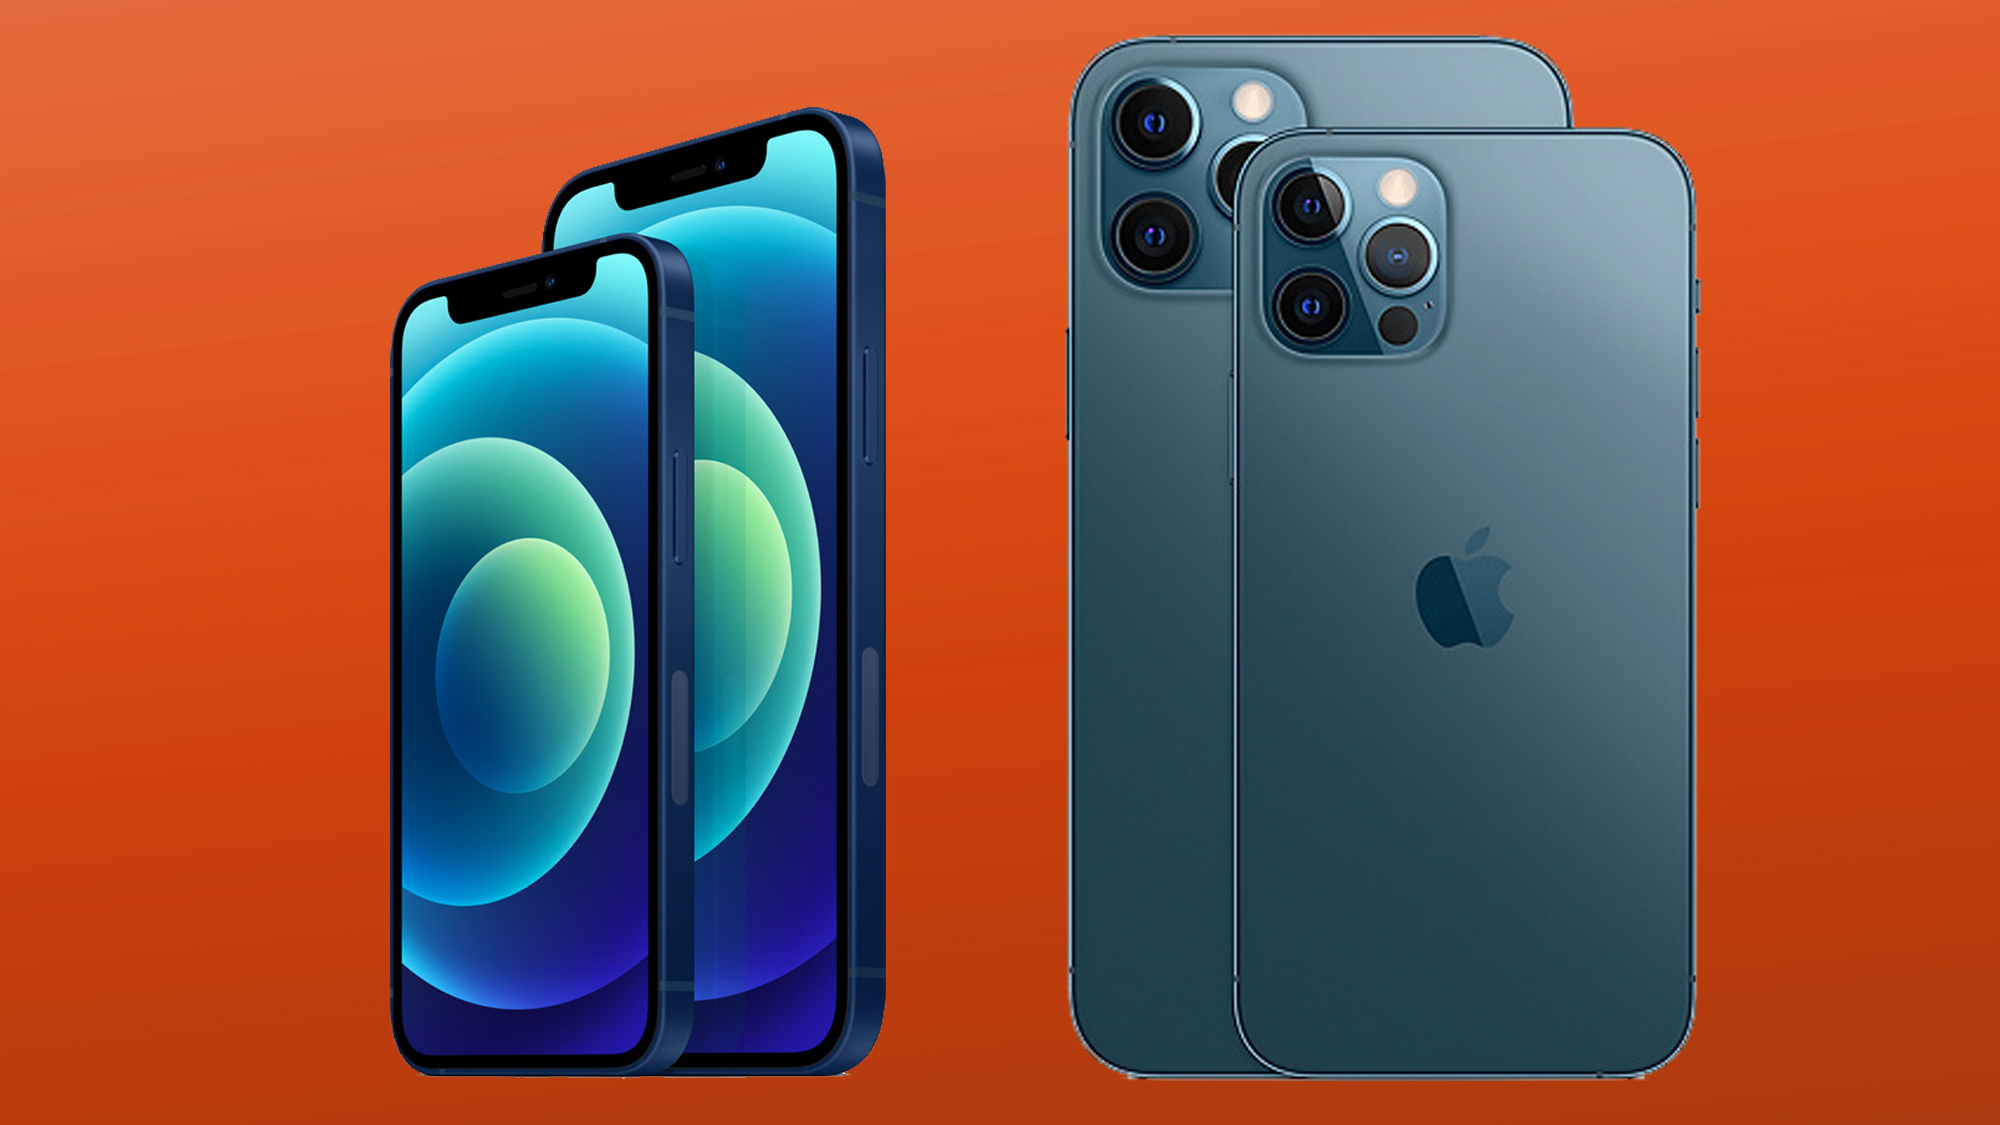 Iphone 12 Mini Vs Iphone 12 Vs Iphone 12 Pro Vs Iphone 12 Pro Max What S Different Tom S Guide